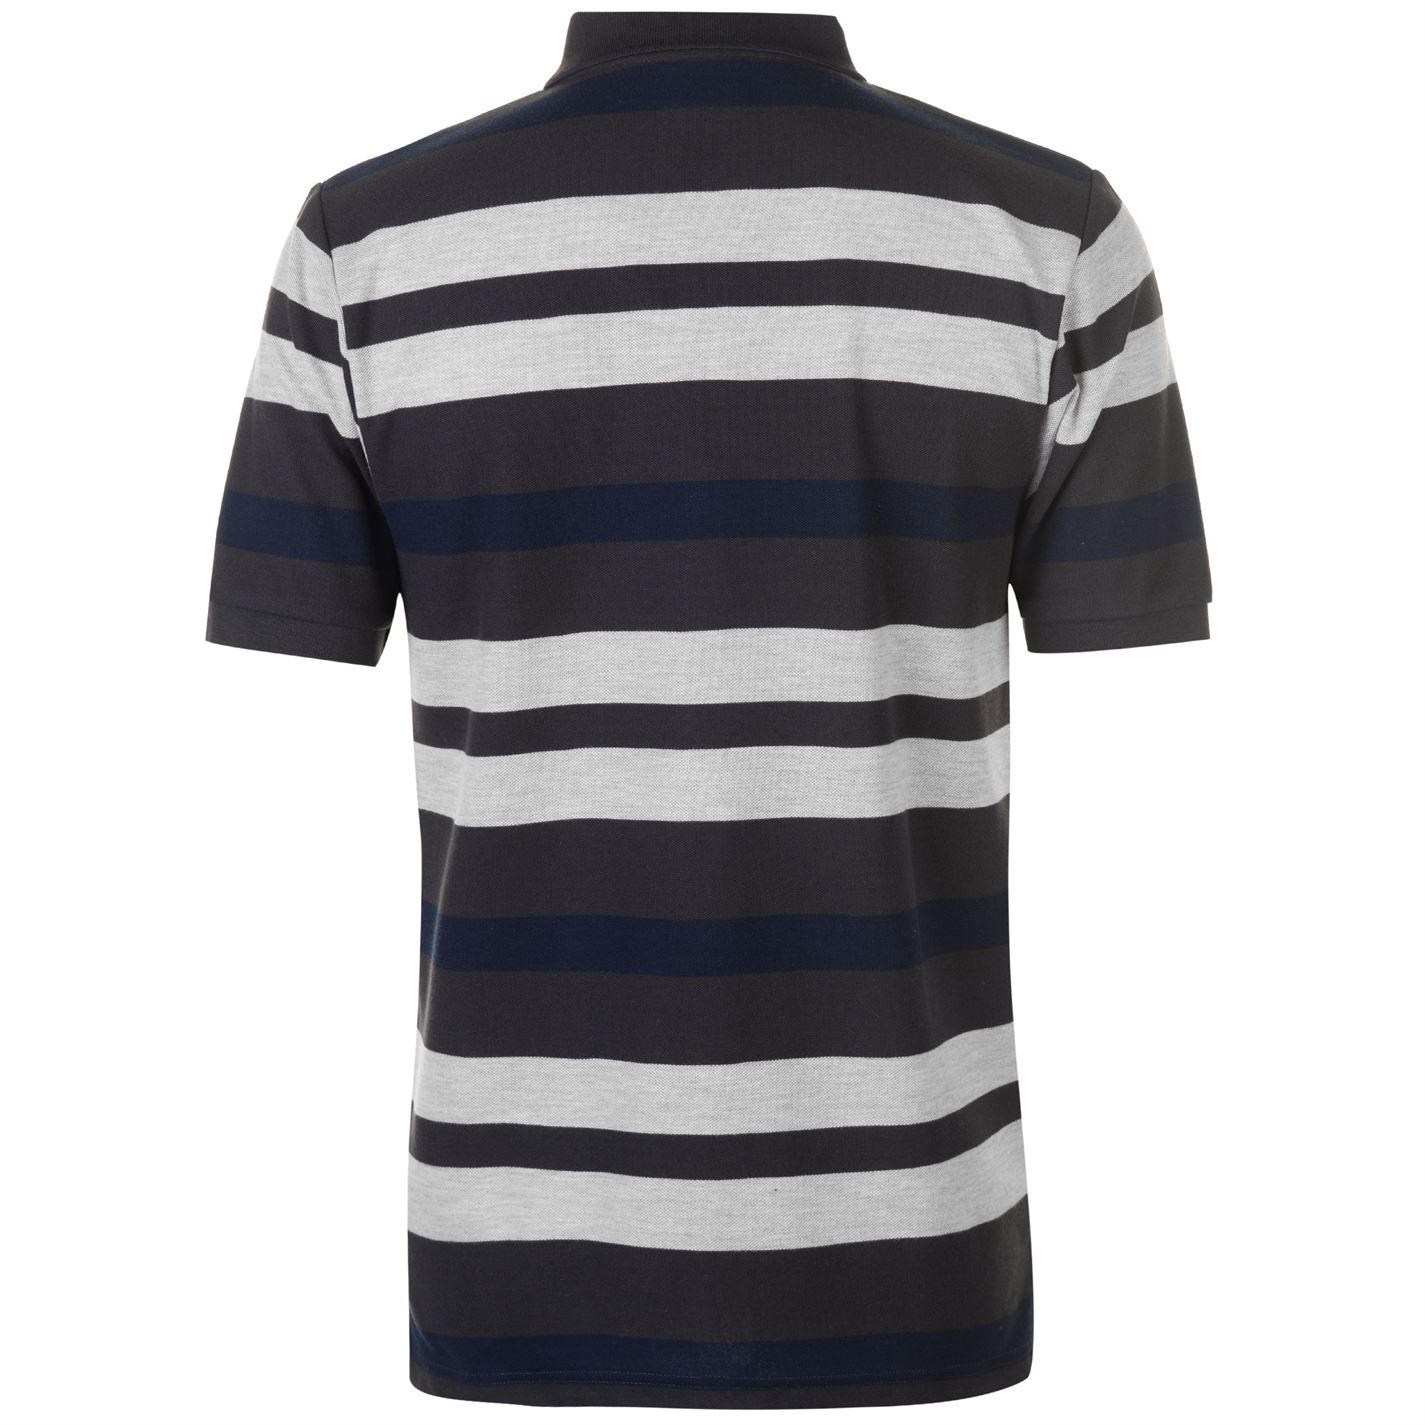 Lonsdale-Mens-Stripe-Polo-Shirt-Classic-Fit-Tee-Top-Short-Sleeve-Button-Placket thumbnail 11